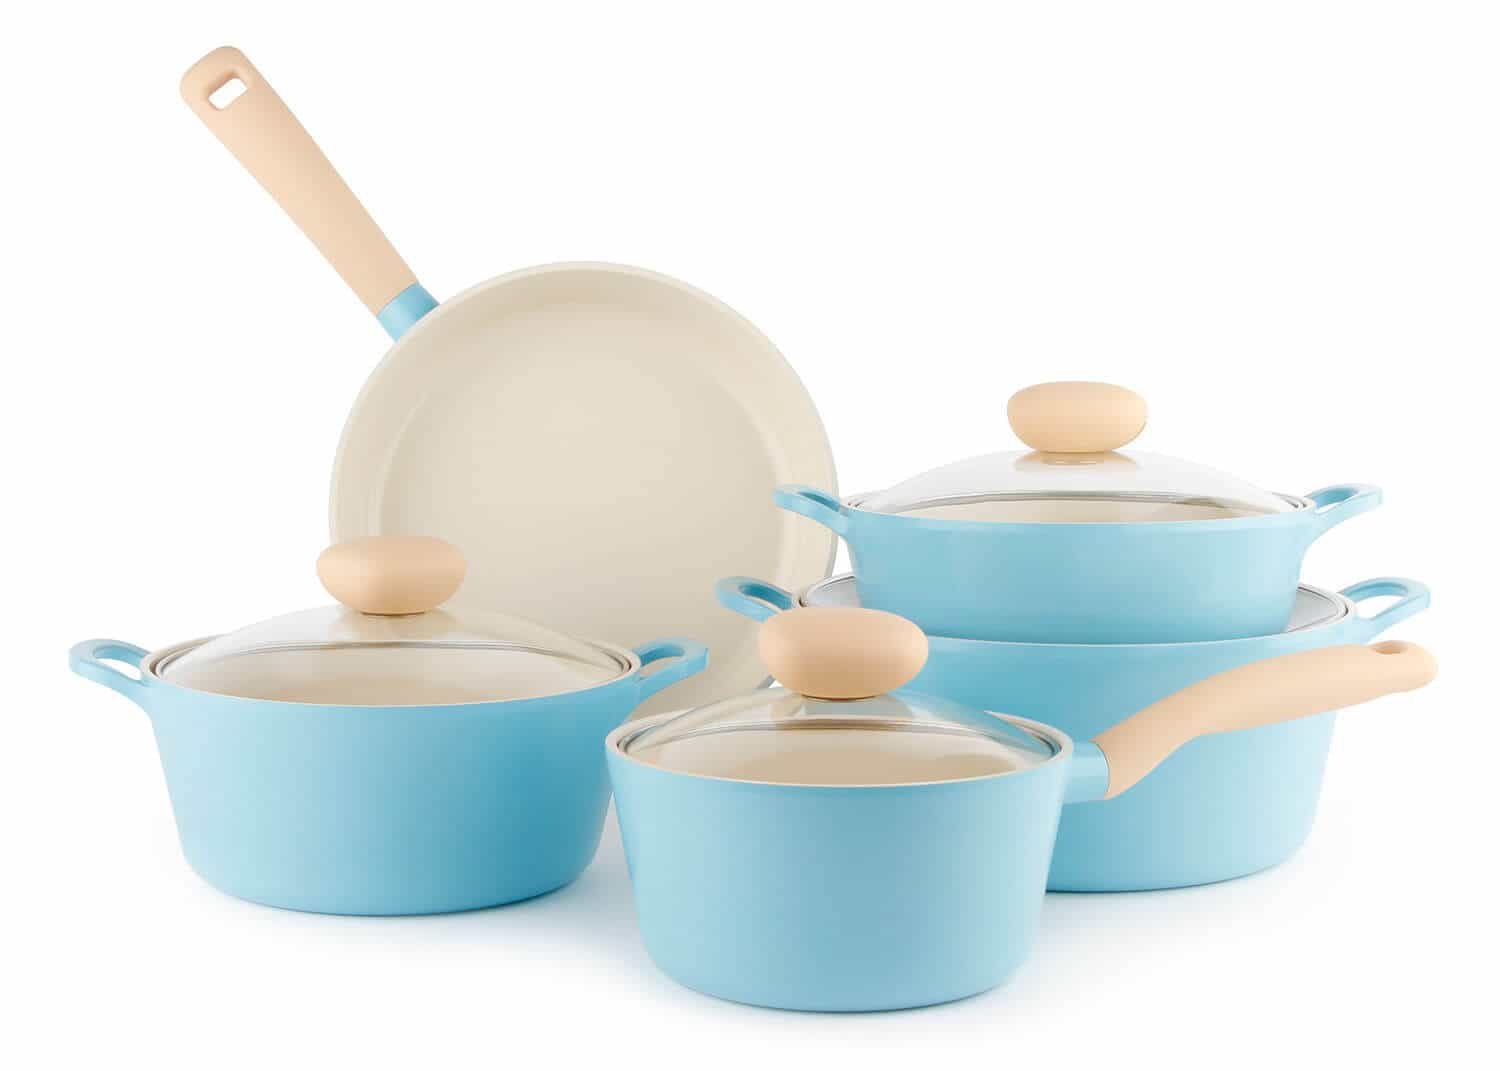 Neoflam Retro Ceramic Cookware Review Amp Giveaway Steamy